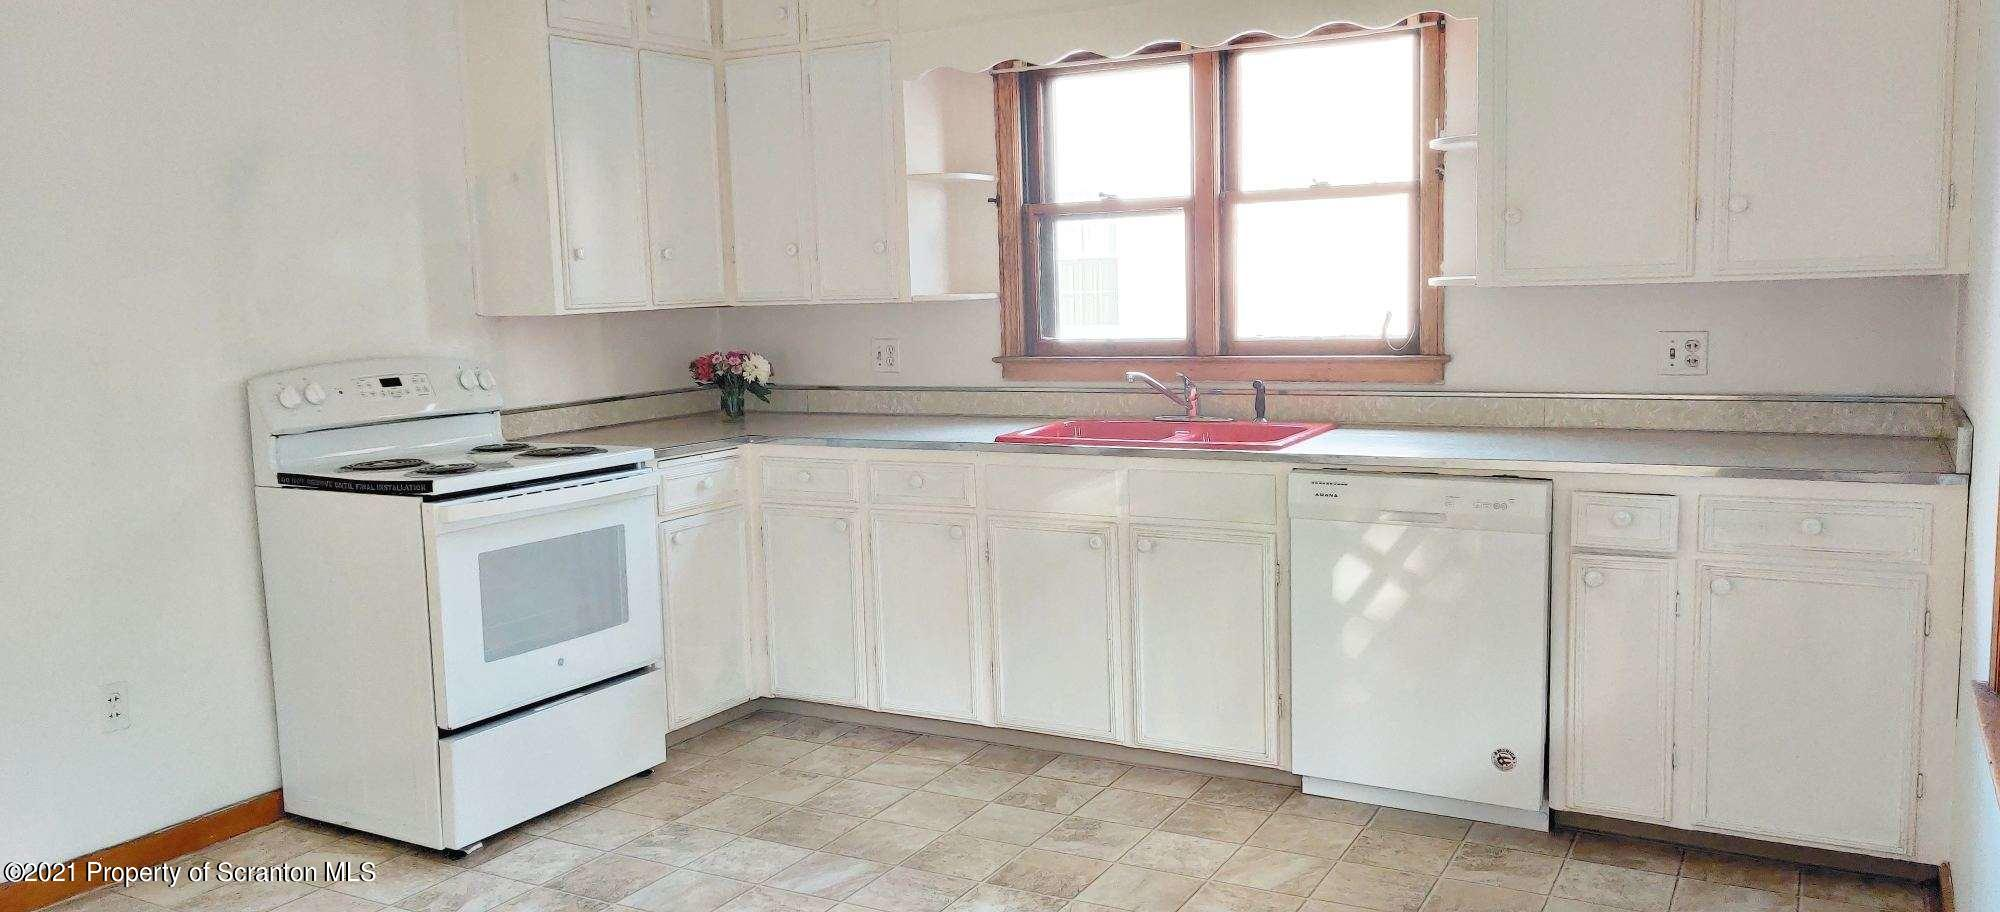 711 Woodmere Ave, Dickson City, Pennsylvania 18519, 3 Bedrooms Bedrooms, 5 Rooms Rooms,1 BathroomBathrooms,Single Family,For Sale,Woodmere,21-1074